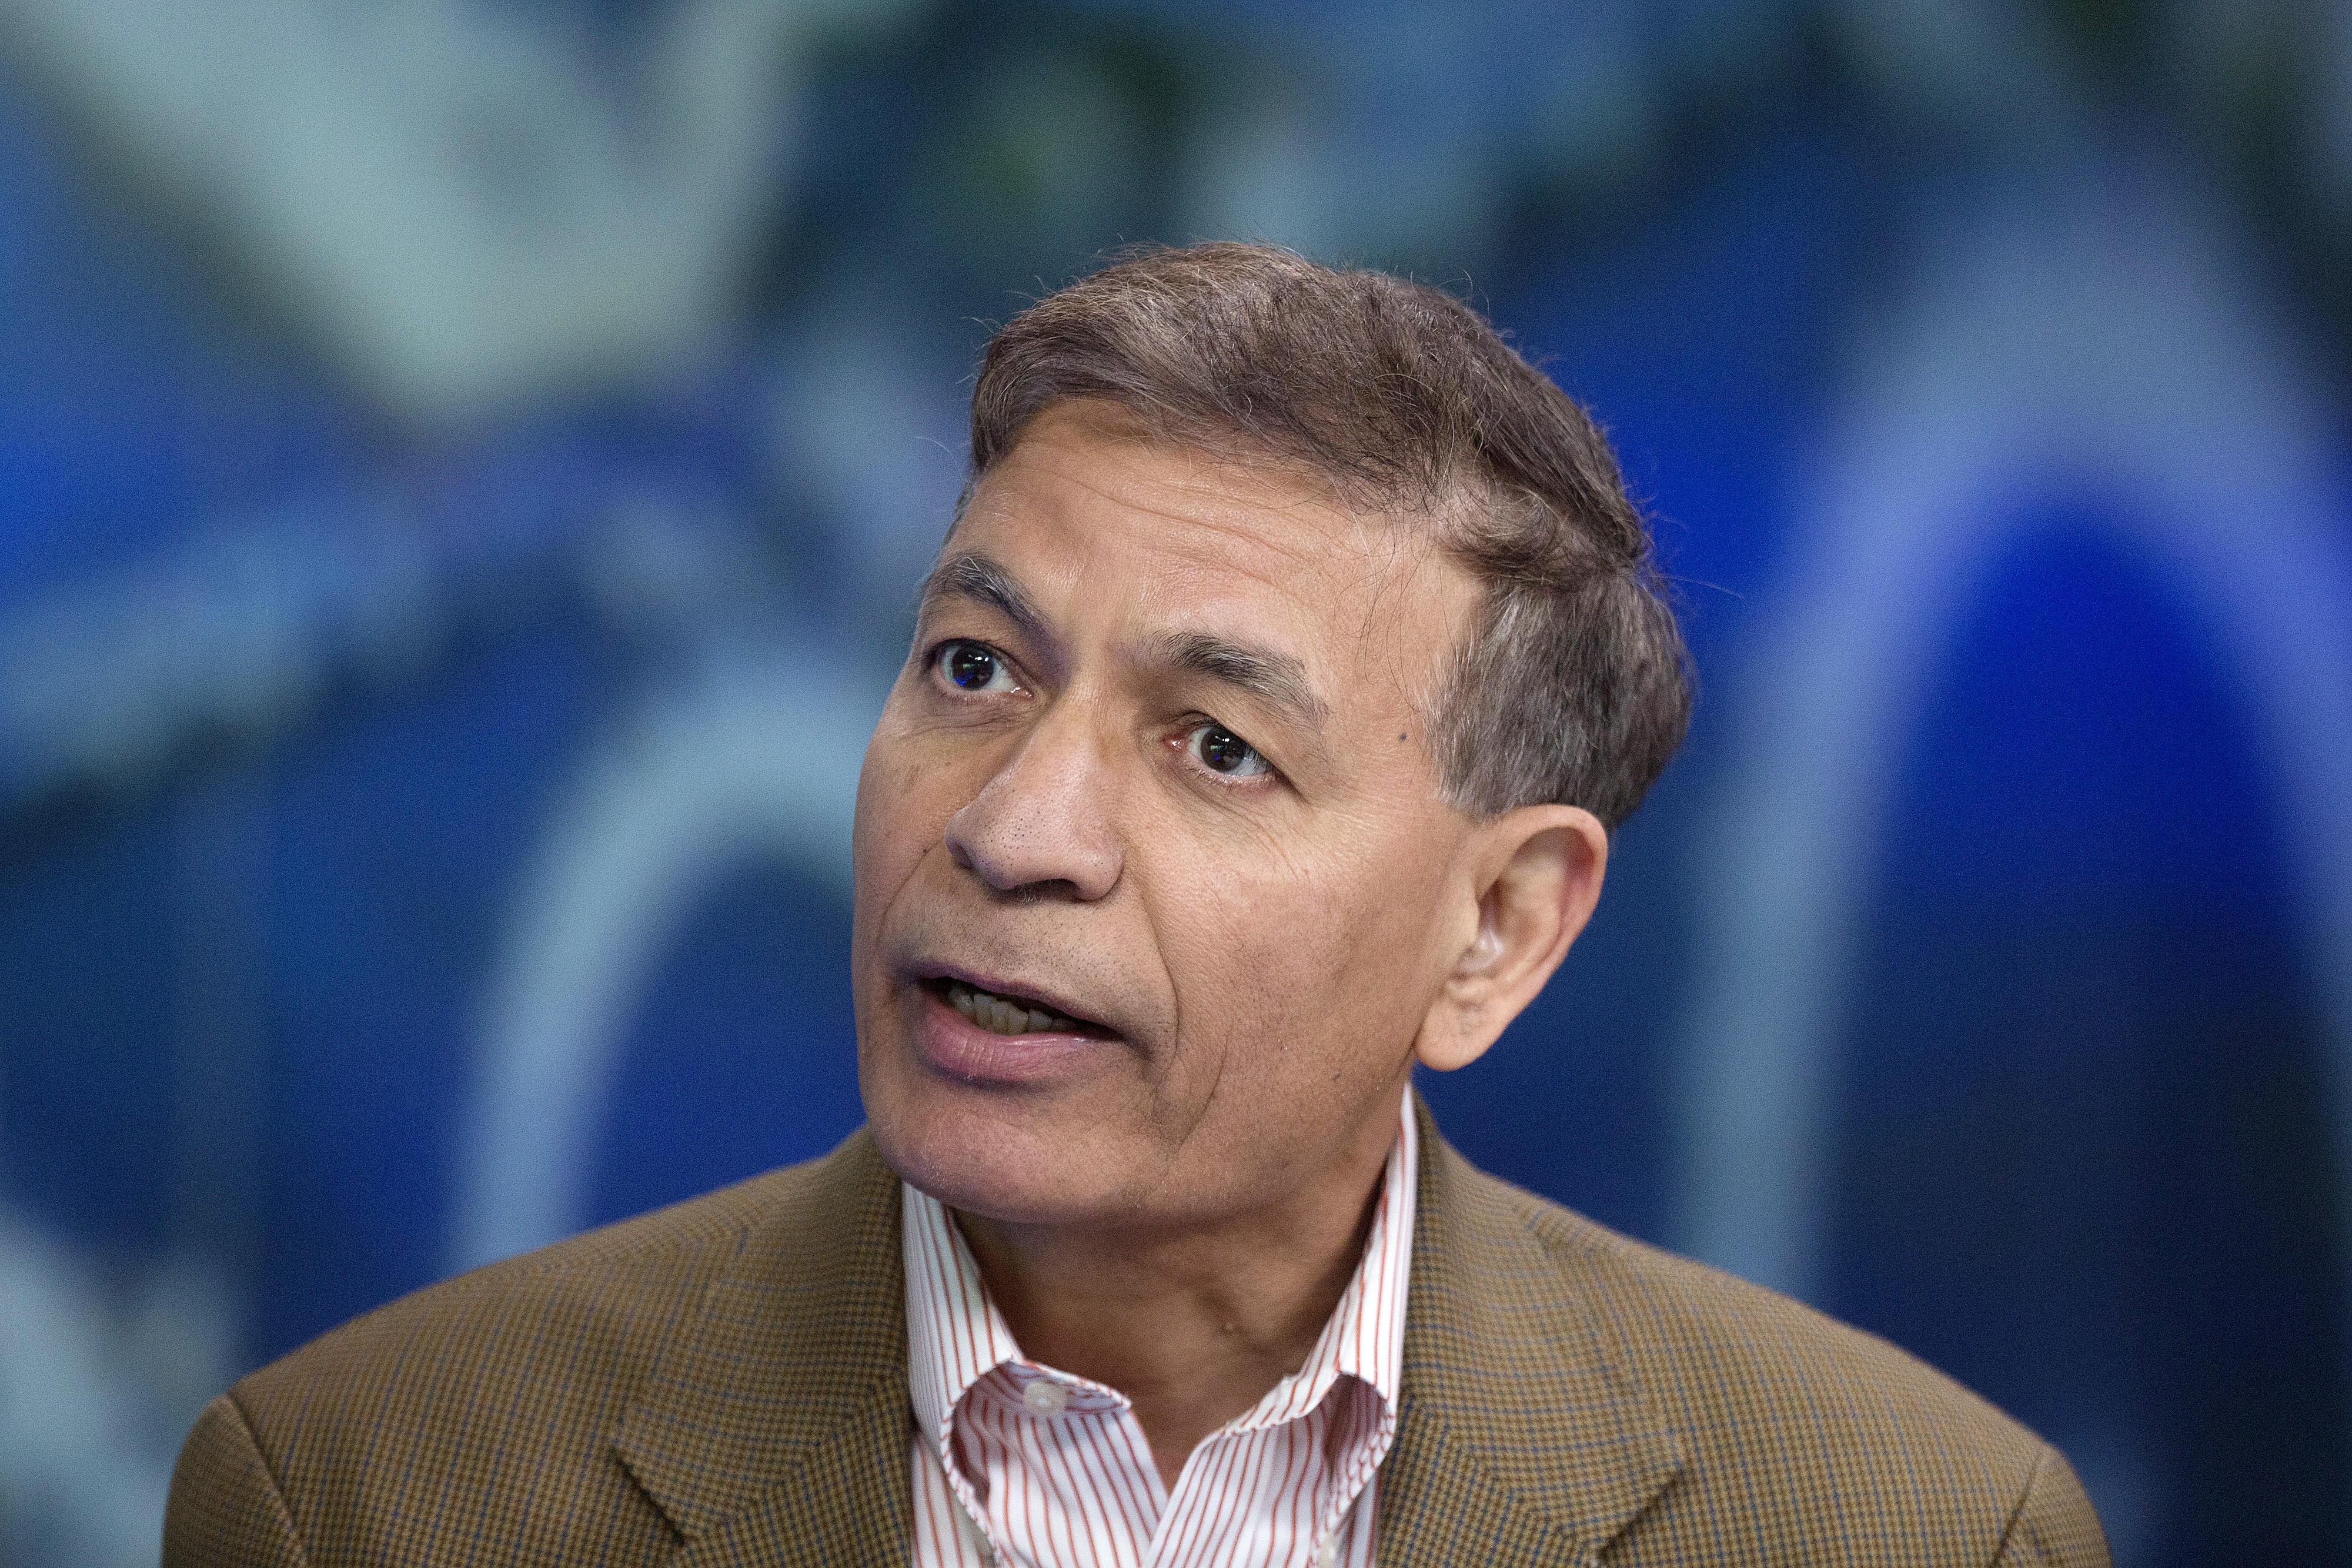 Chief Executive Officer Of Zscaler Inc. Jay Chaudhry Interview